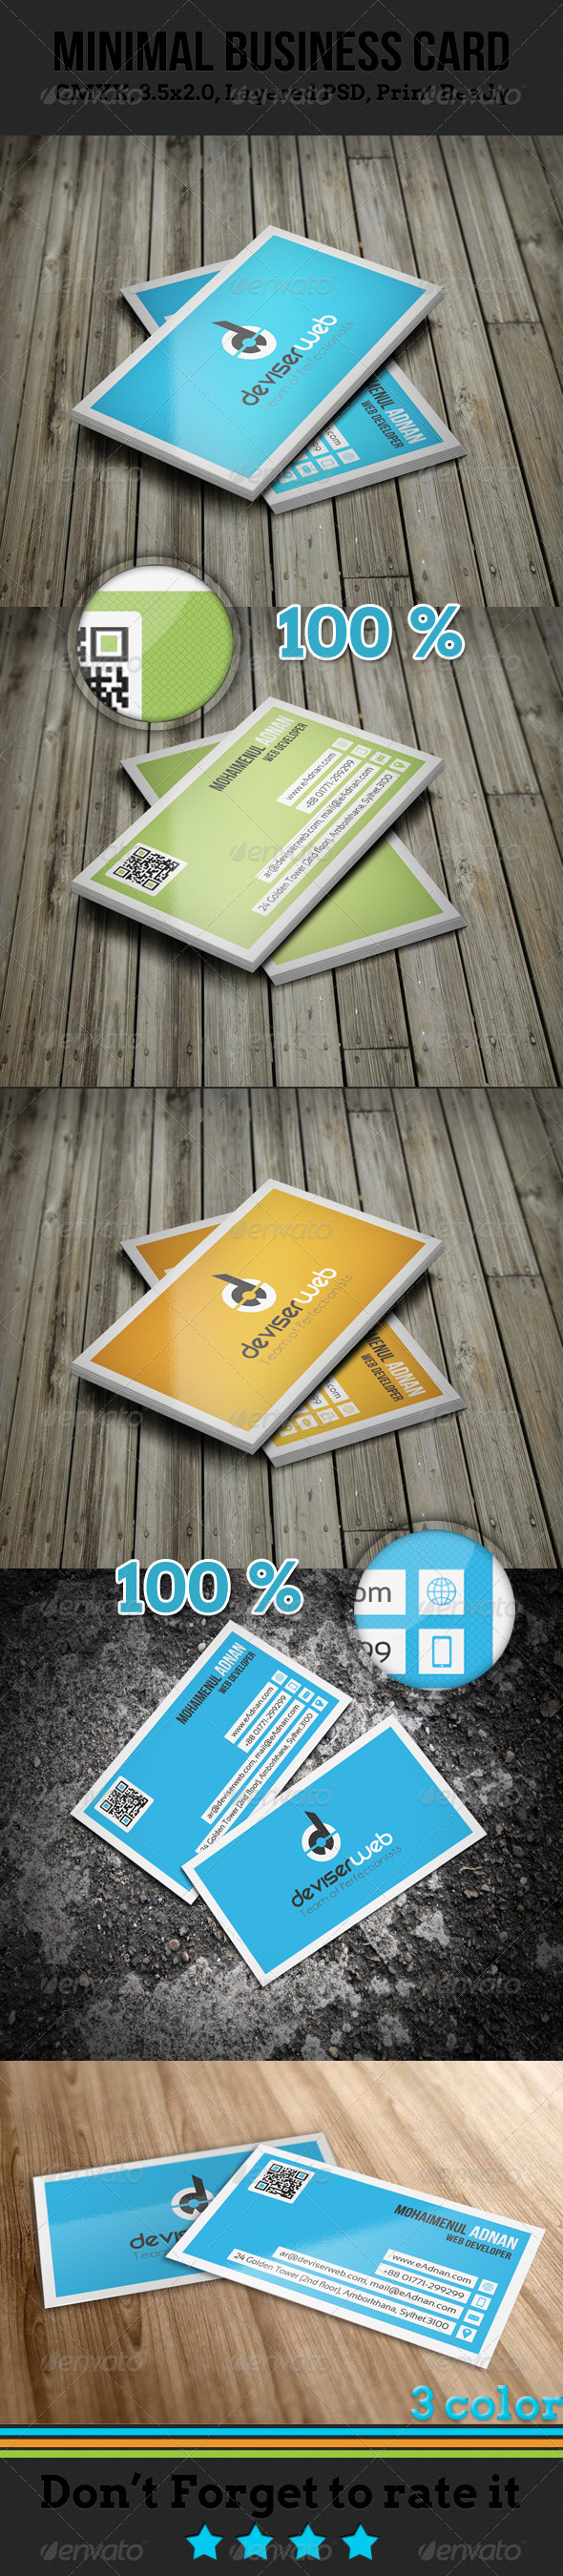 GraphicRiver Minimal Business Card 4658330